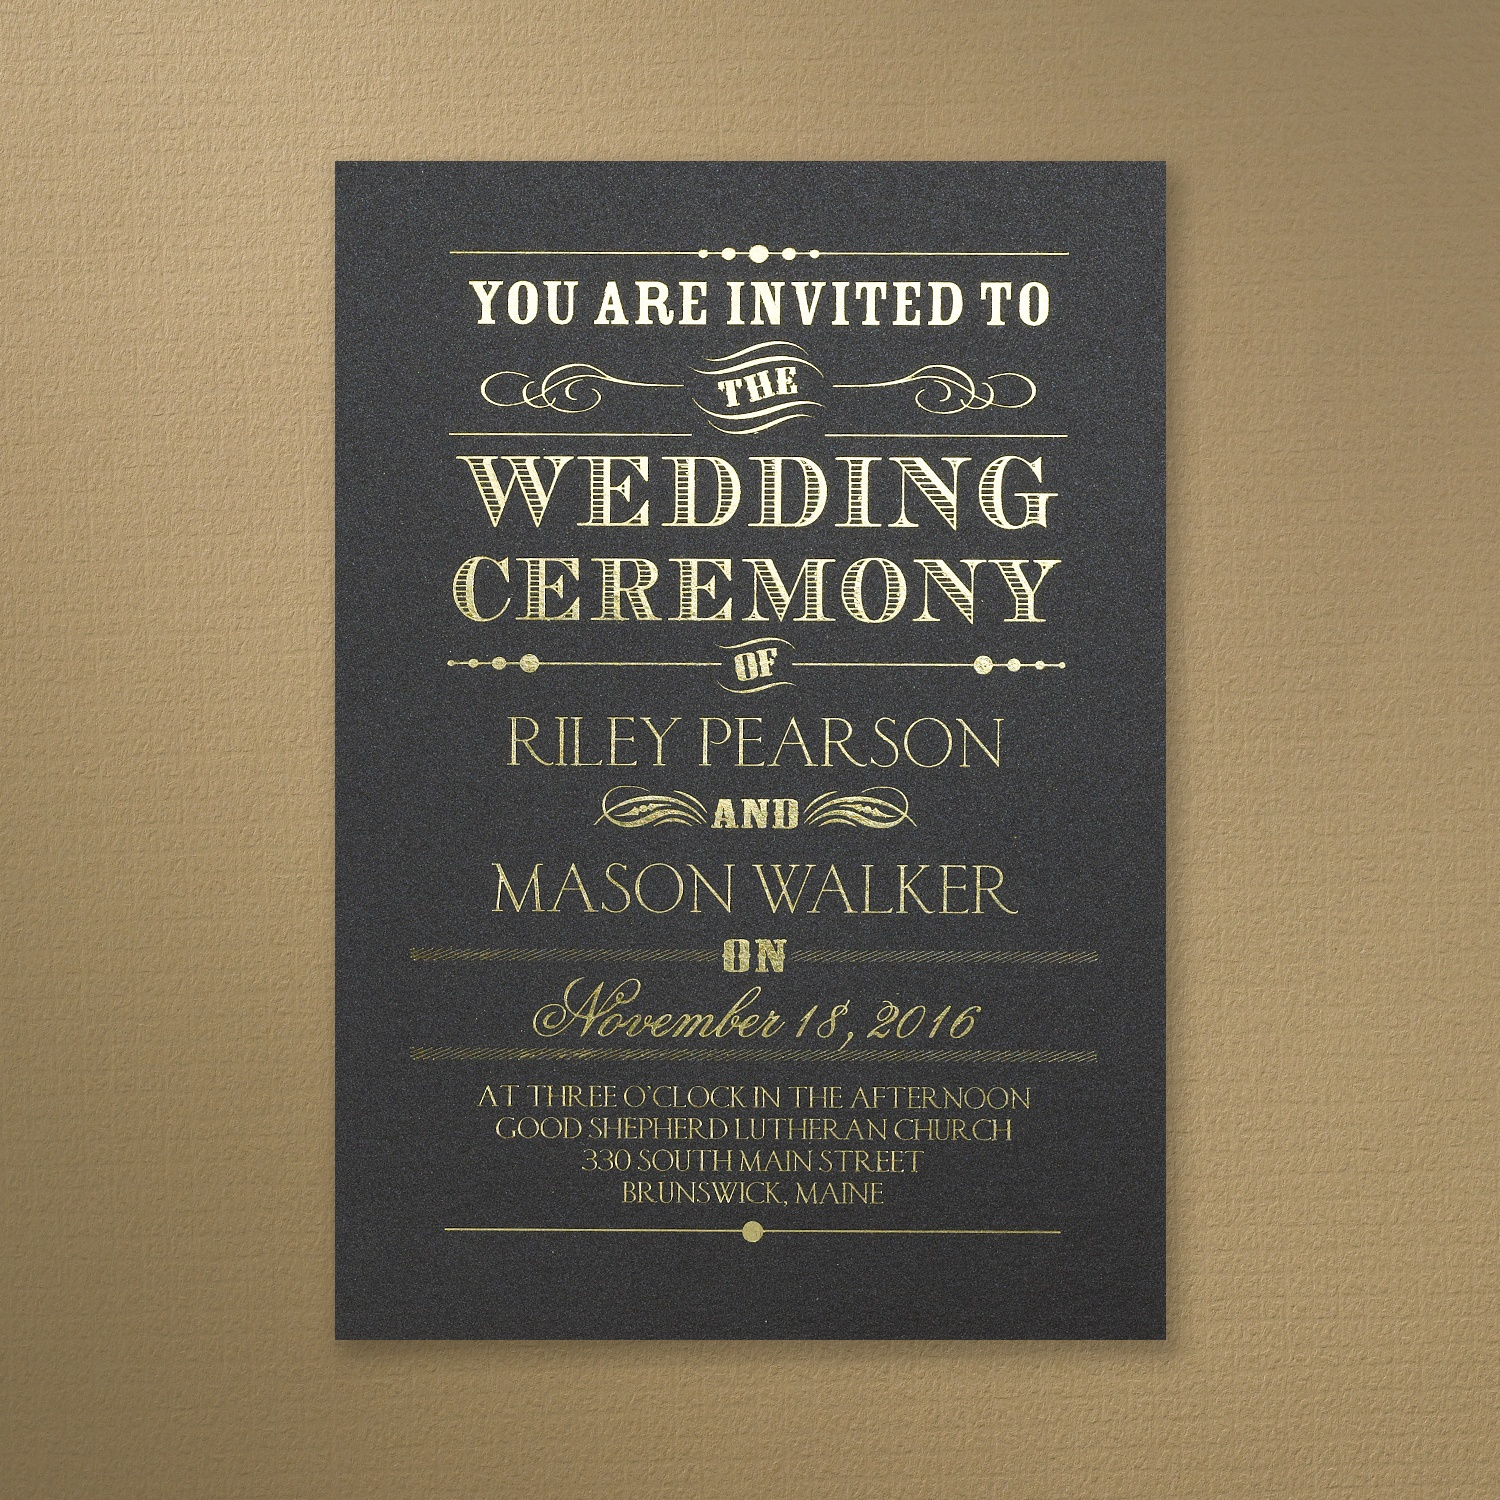 Black And Gold Wedding Invitations 028 - Black And Gold Wedding Invitations